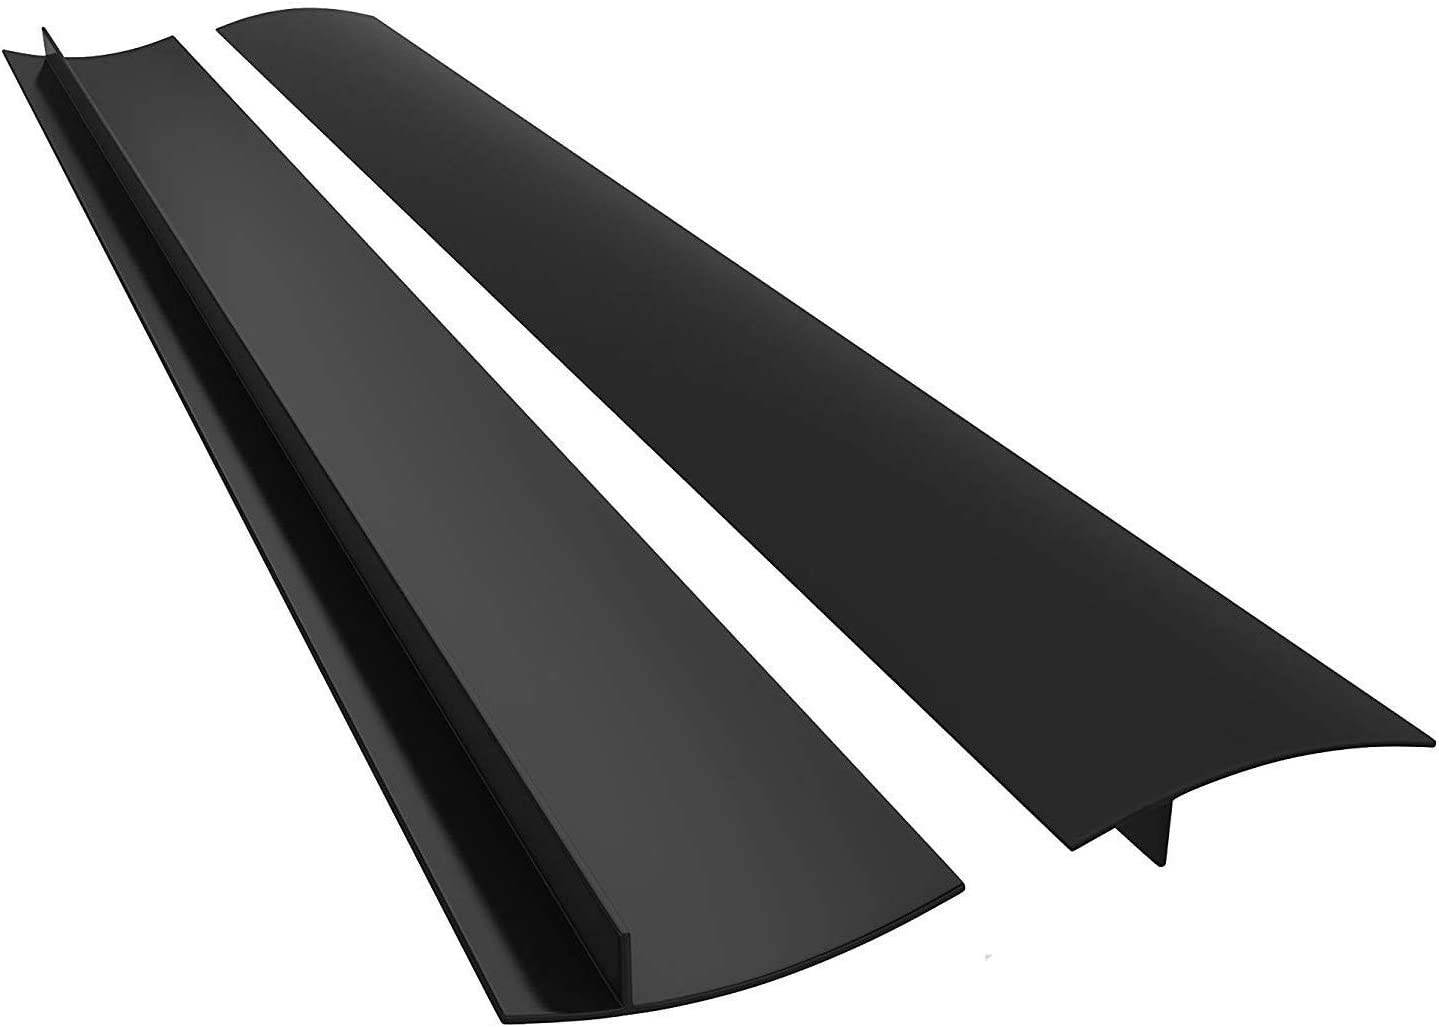 "MingTa Silicone 25"" Kitchen Range Gap Cover Filler Easy Clean Heat Resistant Wide & Long Gap Filler, Seals Spills Between Counter, Stove Top, Oven, Washer & Dryer (25 Inches, Black)"